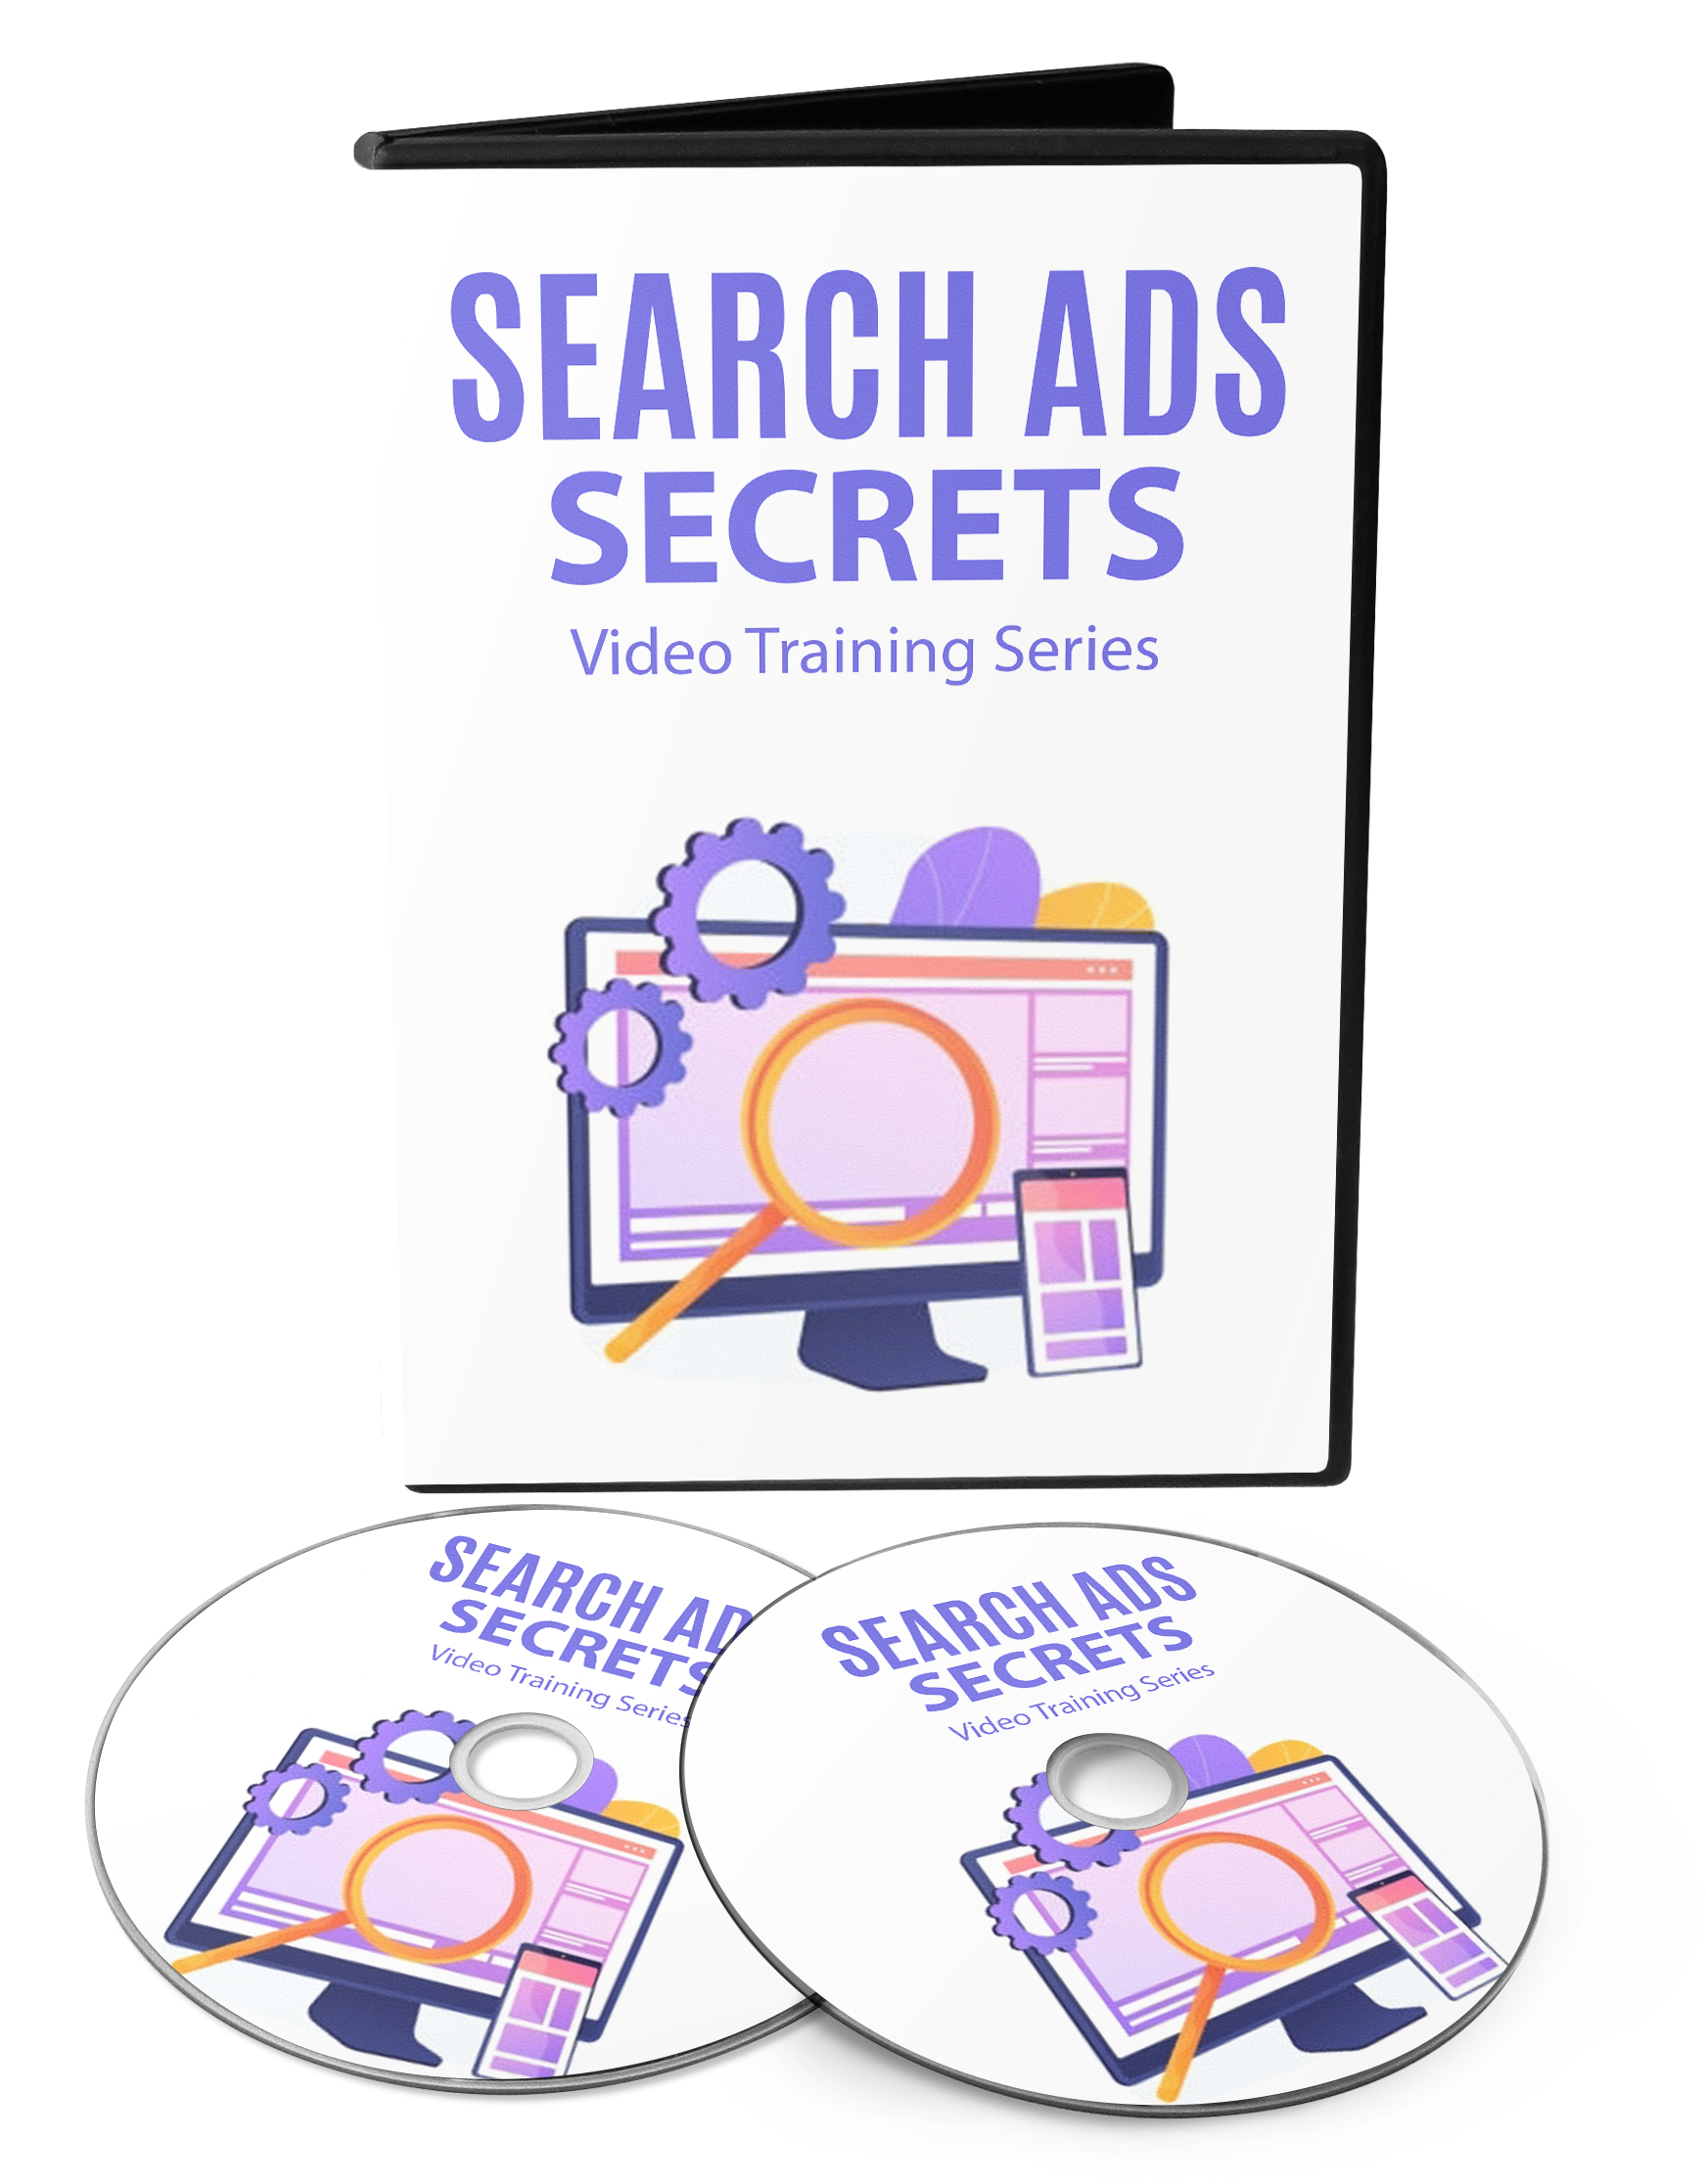 Search Ads Secrets